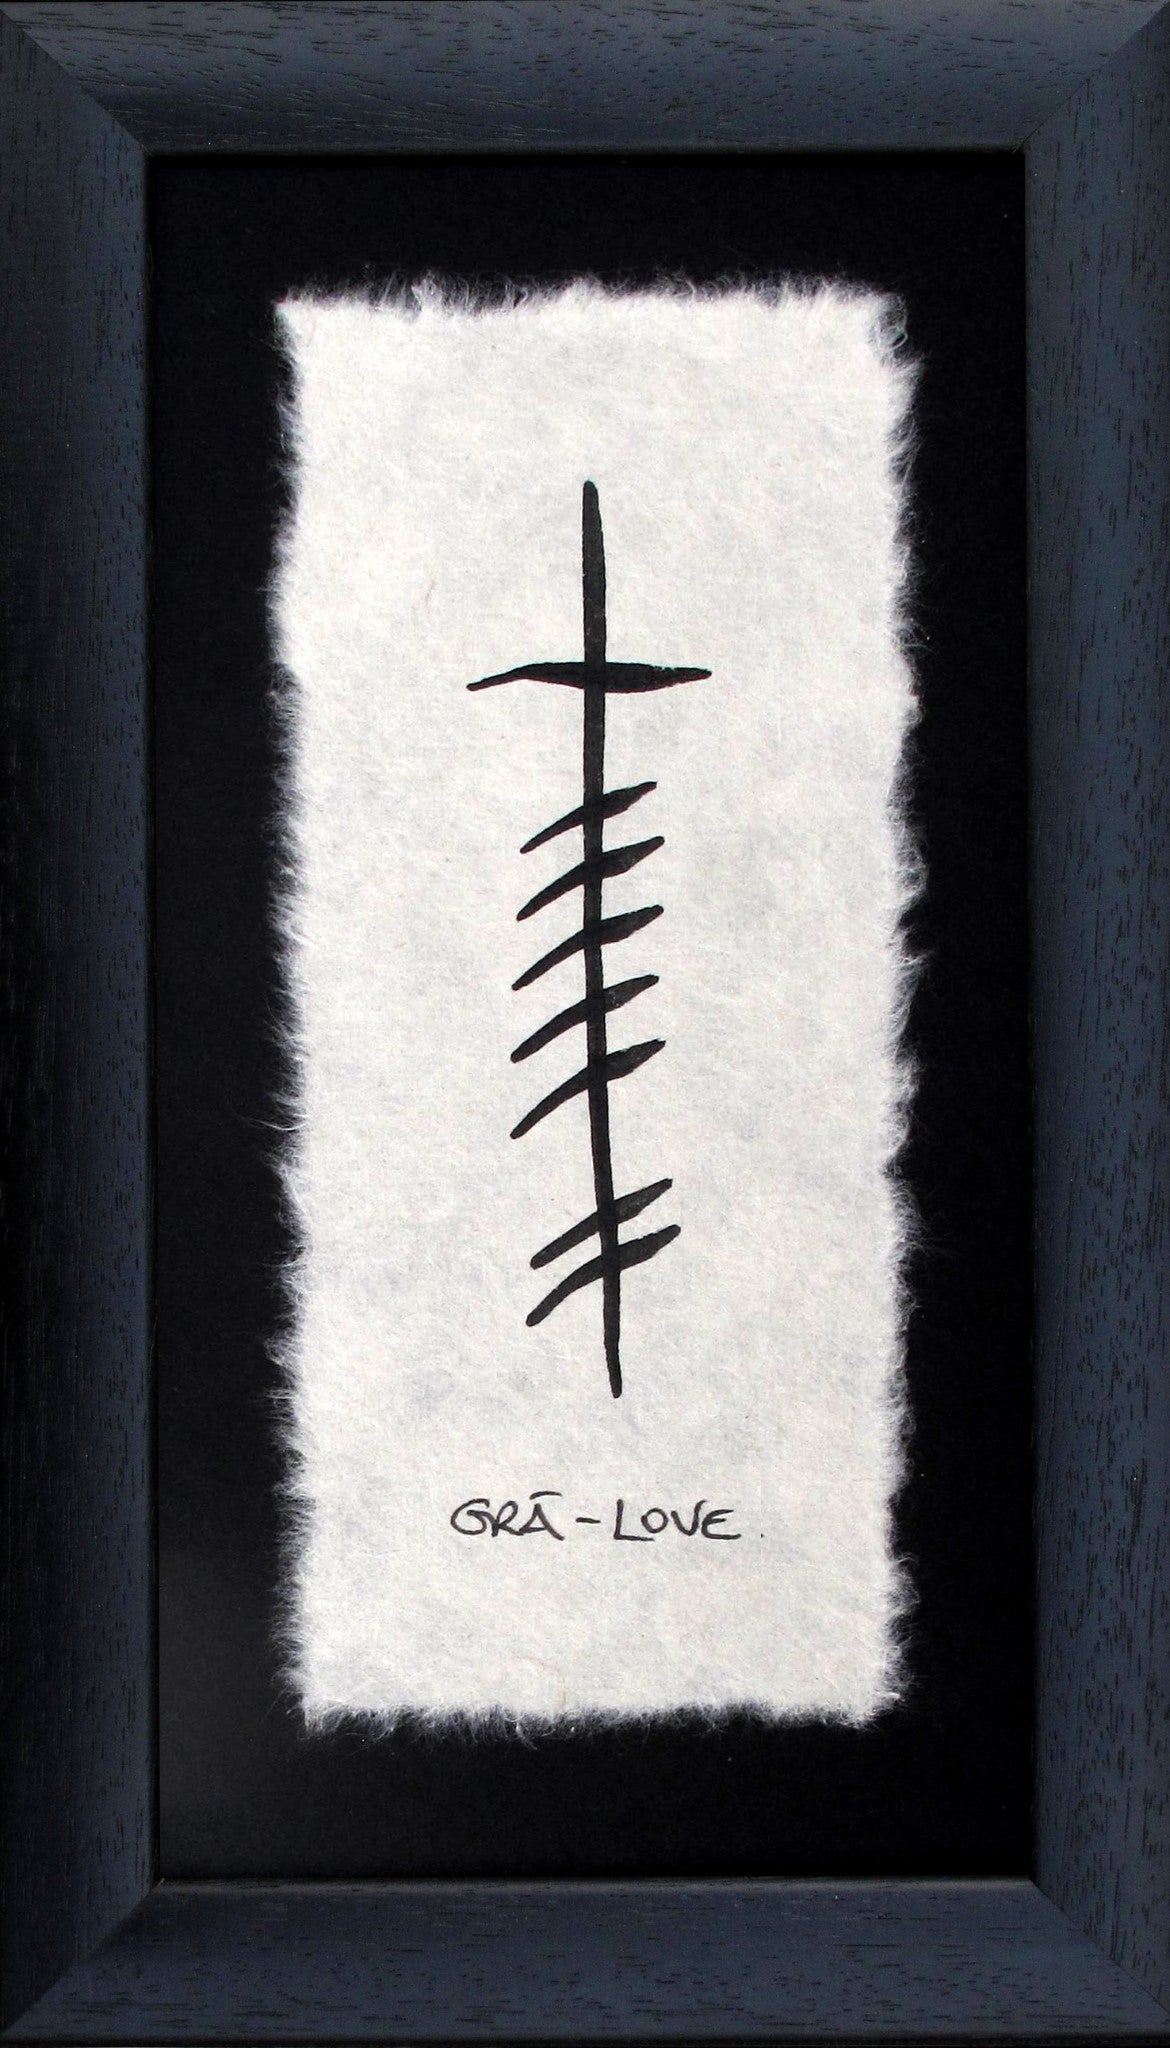 Ogham Wishes - Love, Gra